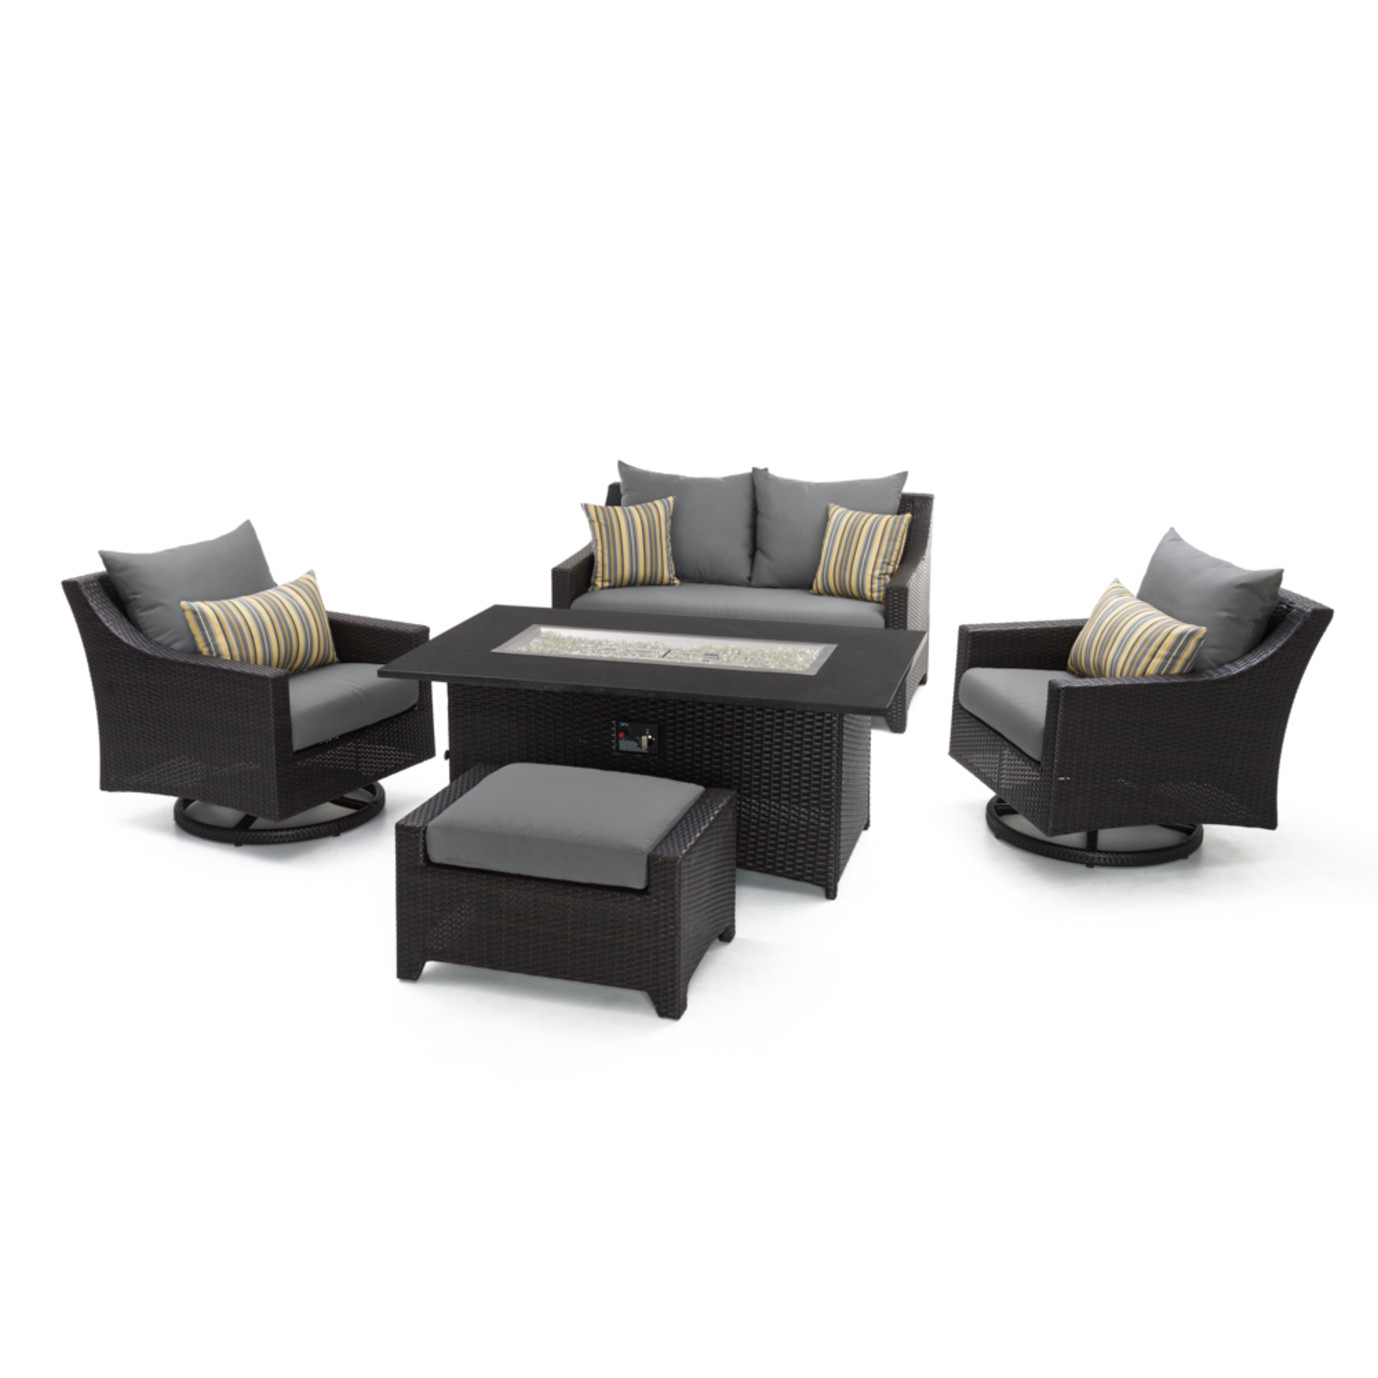 Deco™ 5 Piece Love & Motion Club Fire Set - Charcoal Gray